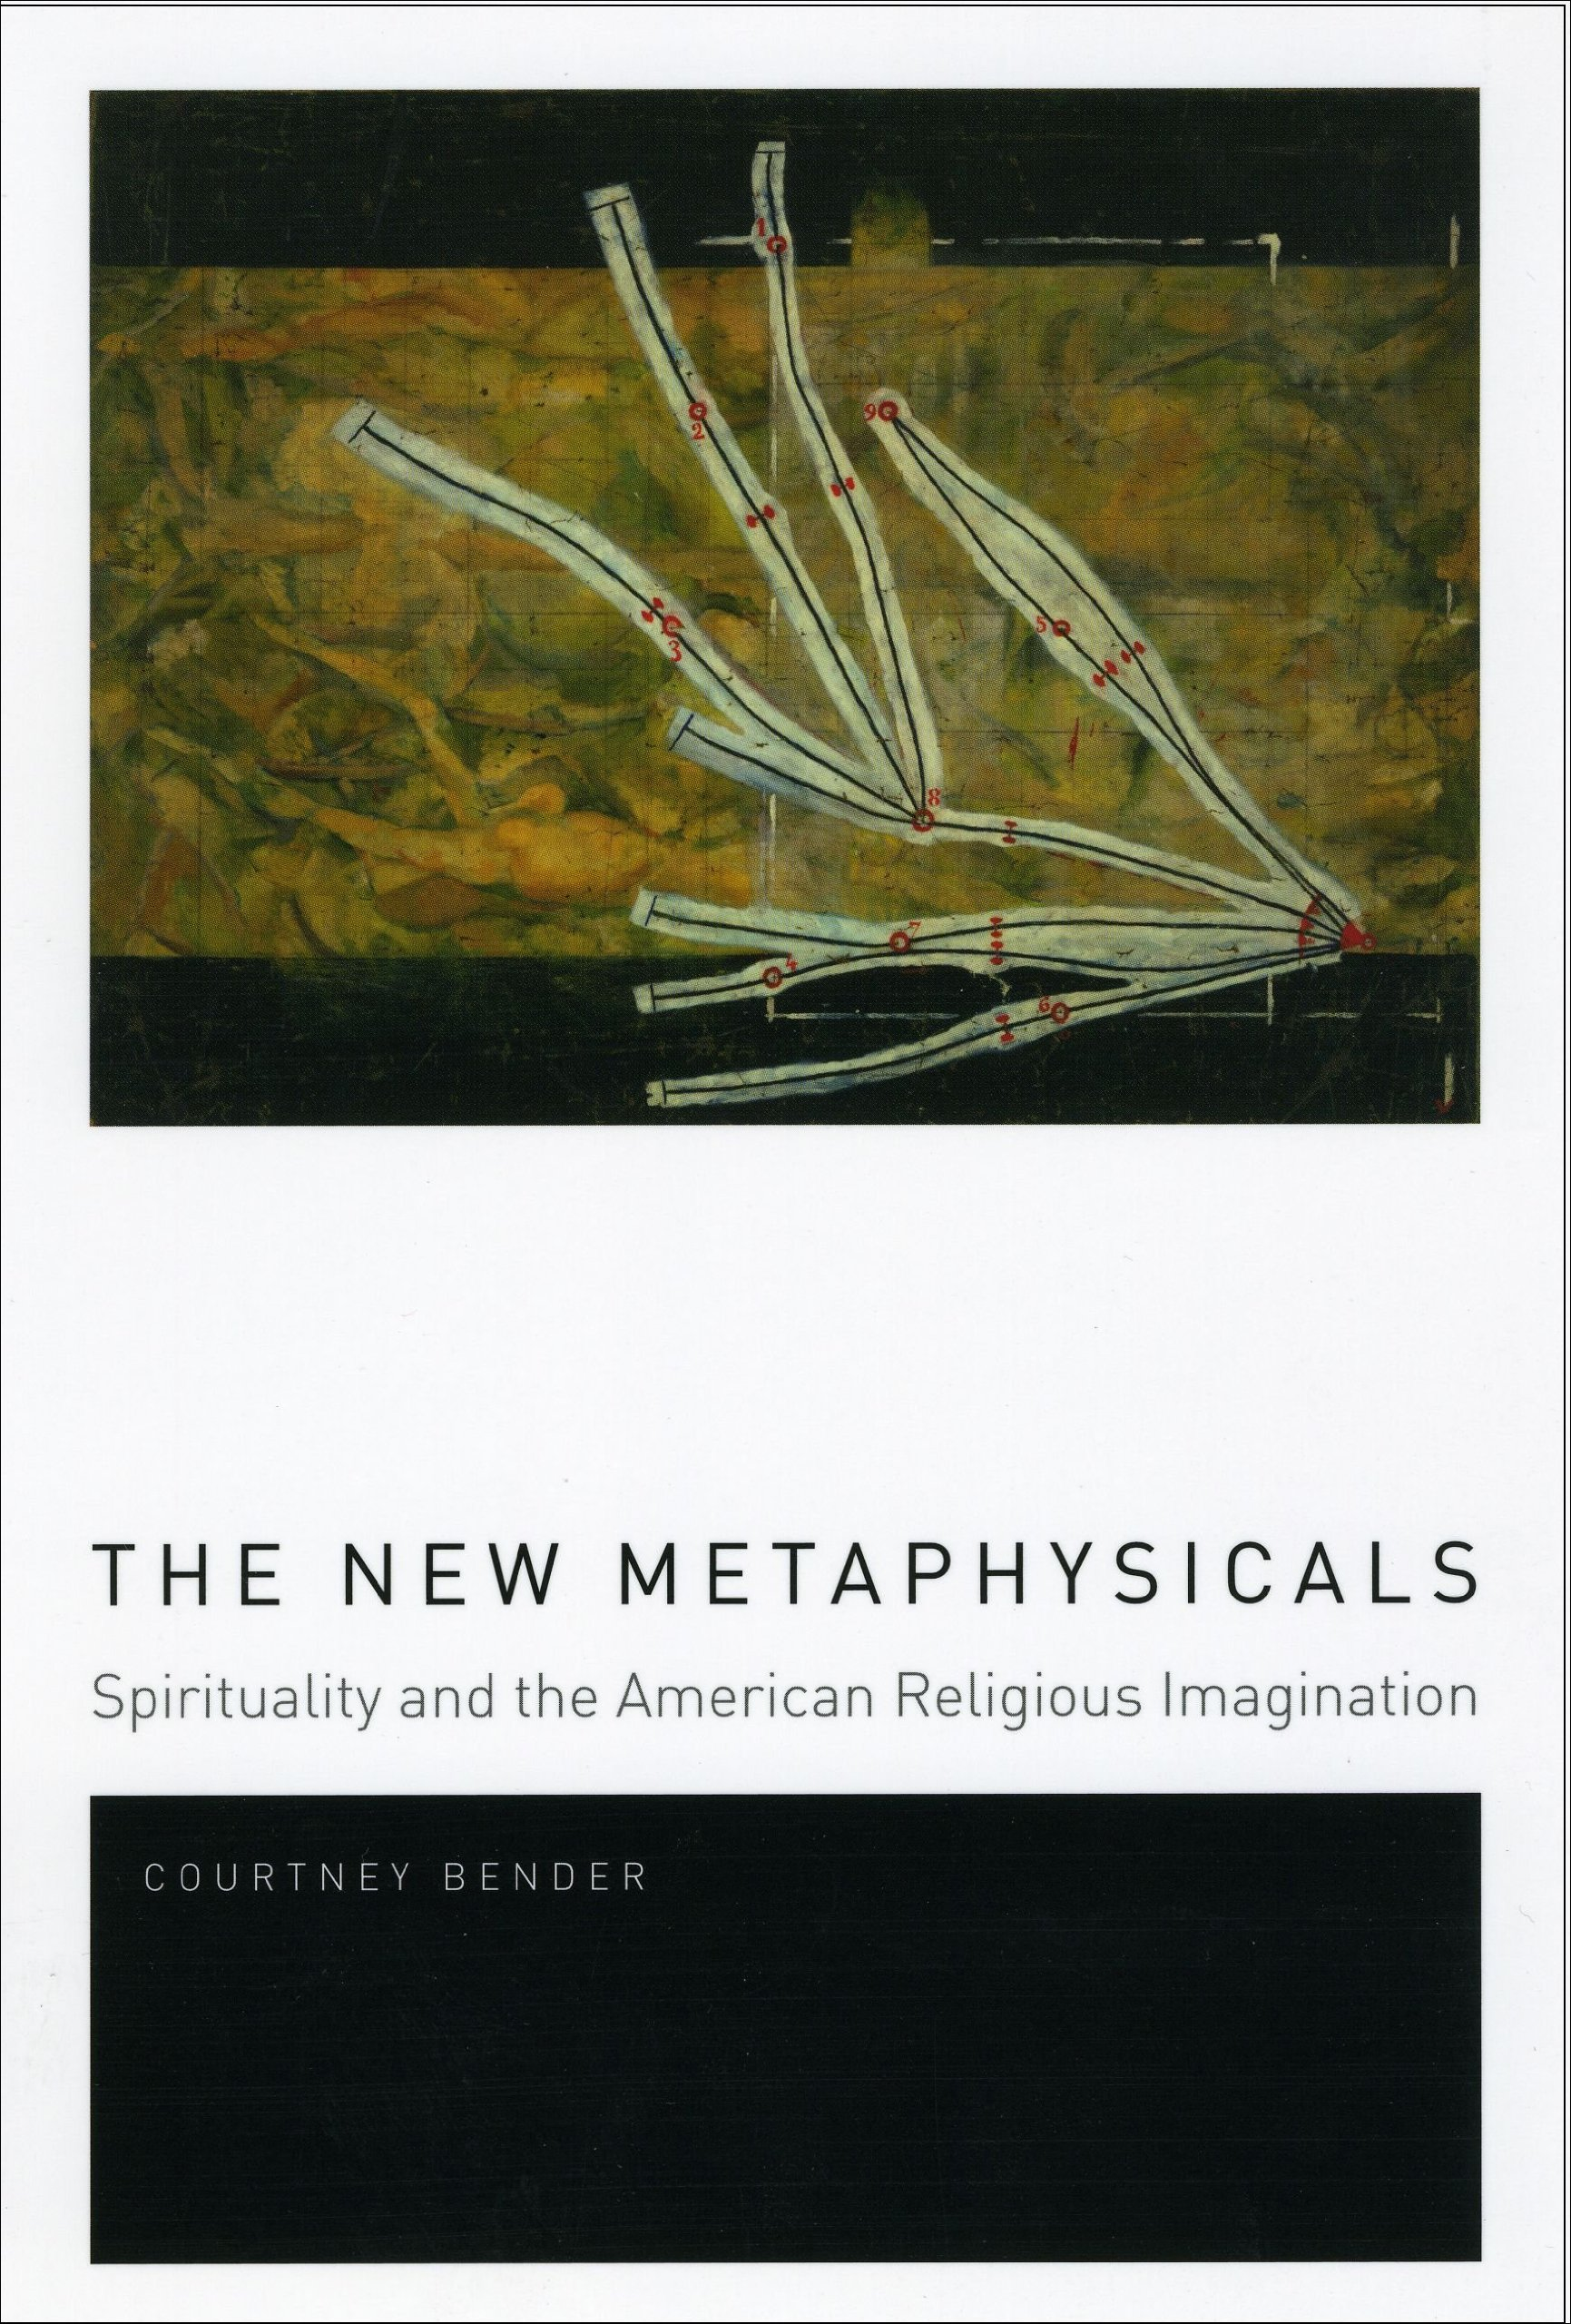 The New Metaphysicals: Spirituality and the American Religious Imagination:  Courtney Bender: 9780226042800: Amazon.com: Books